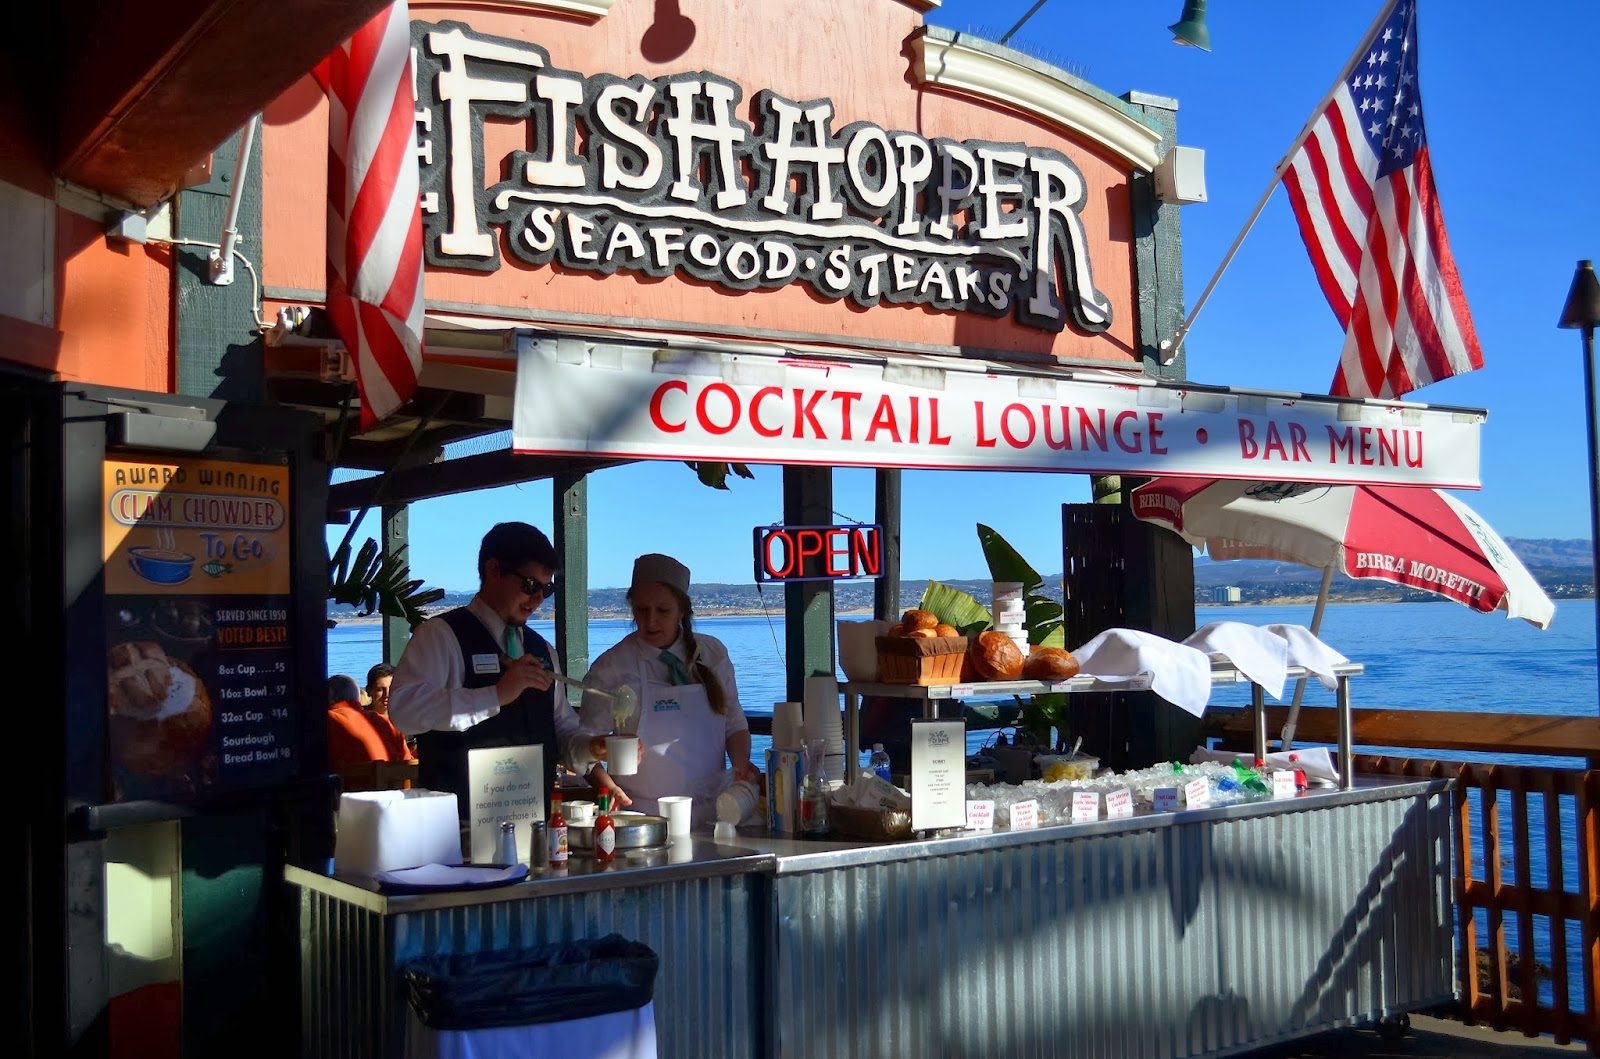 Hedofoodia the fish hopper seafood steaks monterey for Fish hopper monterey